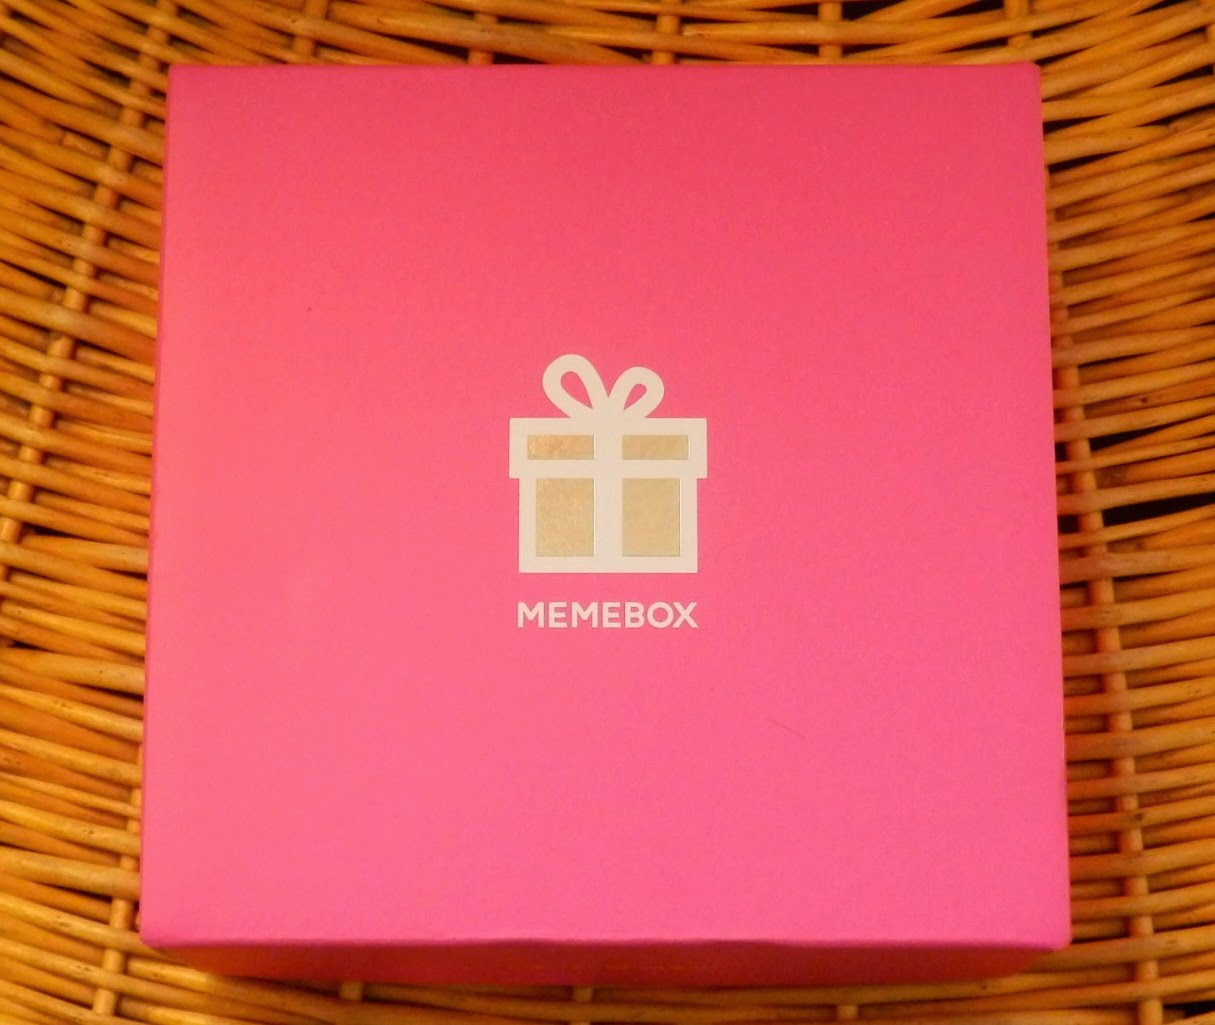 MEMEBOX is a South Korean Beauty Box Service